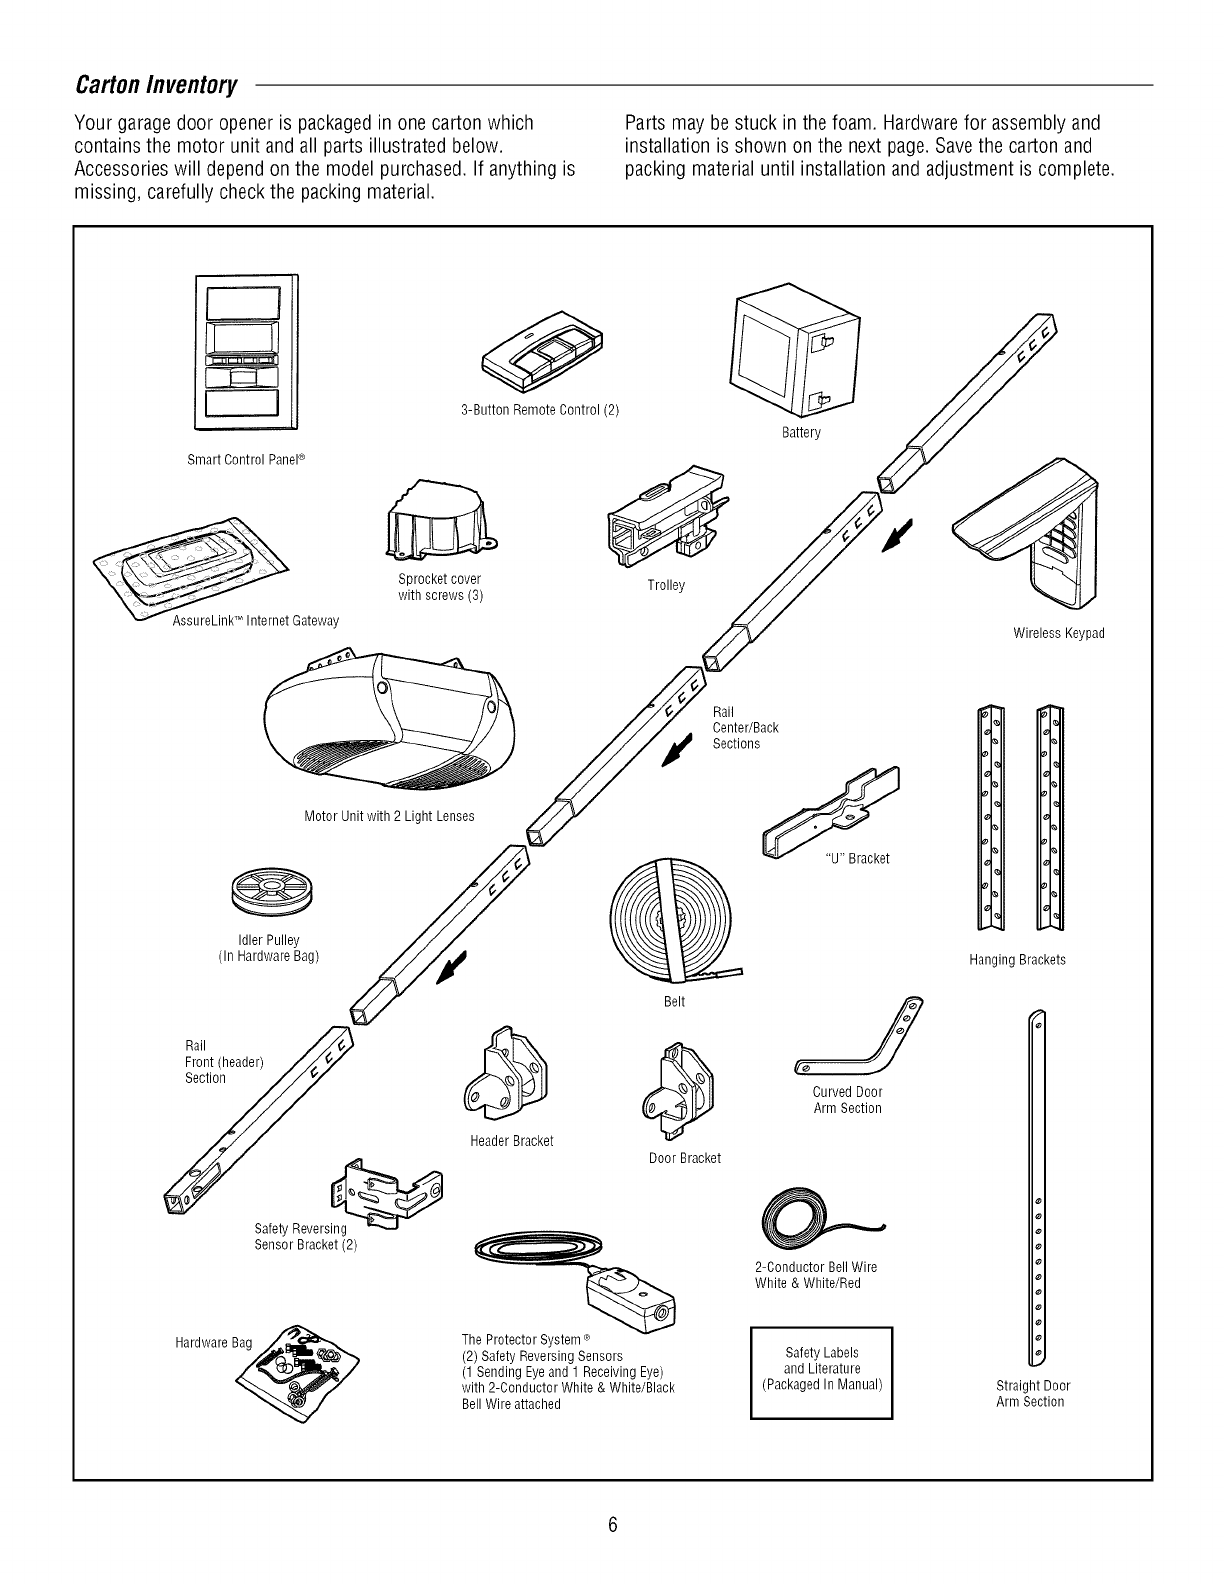 Page 6 of Craftsman Garage Door Opener 139.3043 User Guide